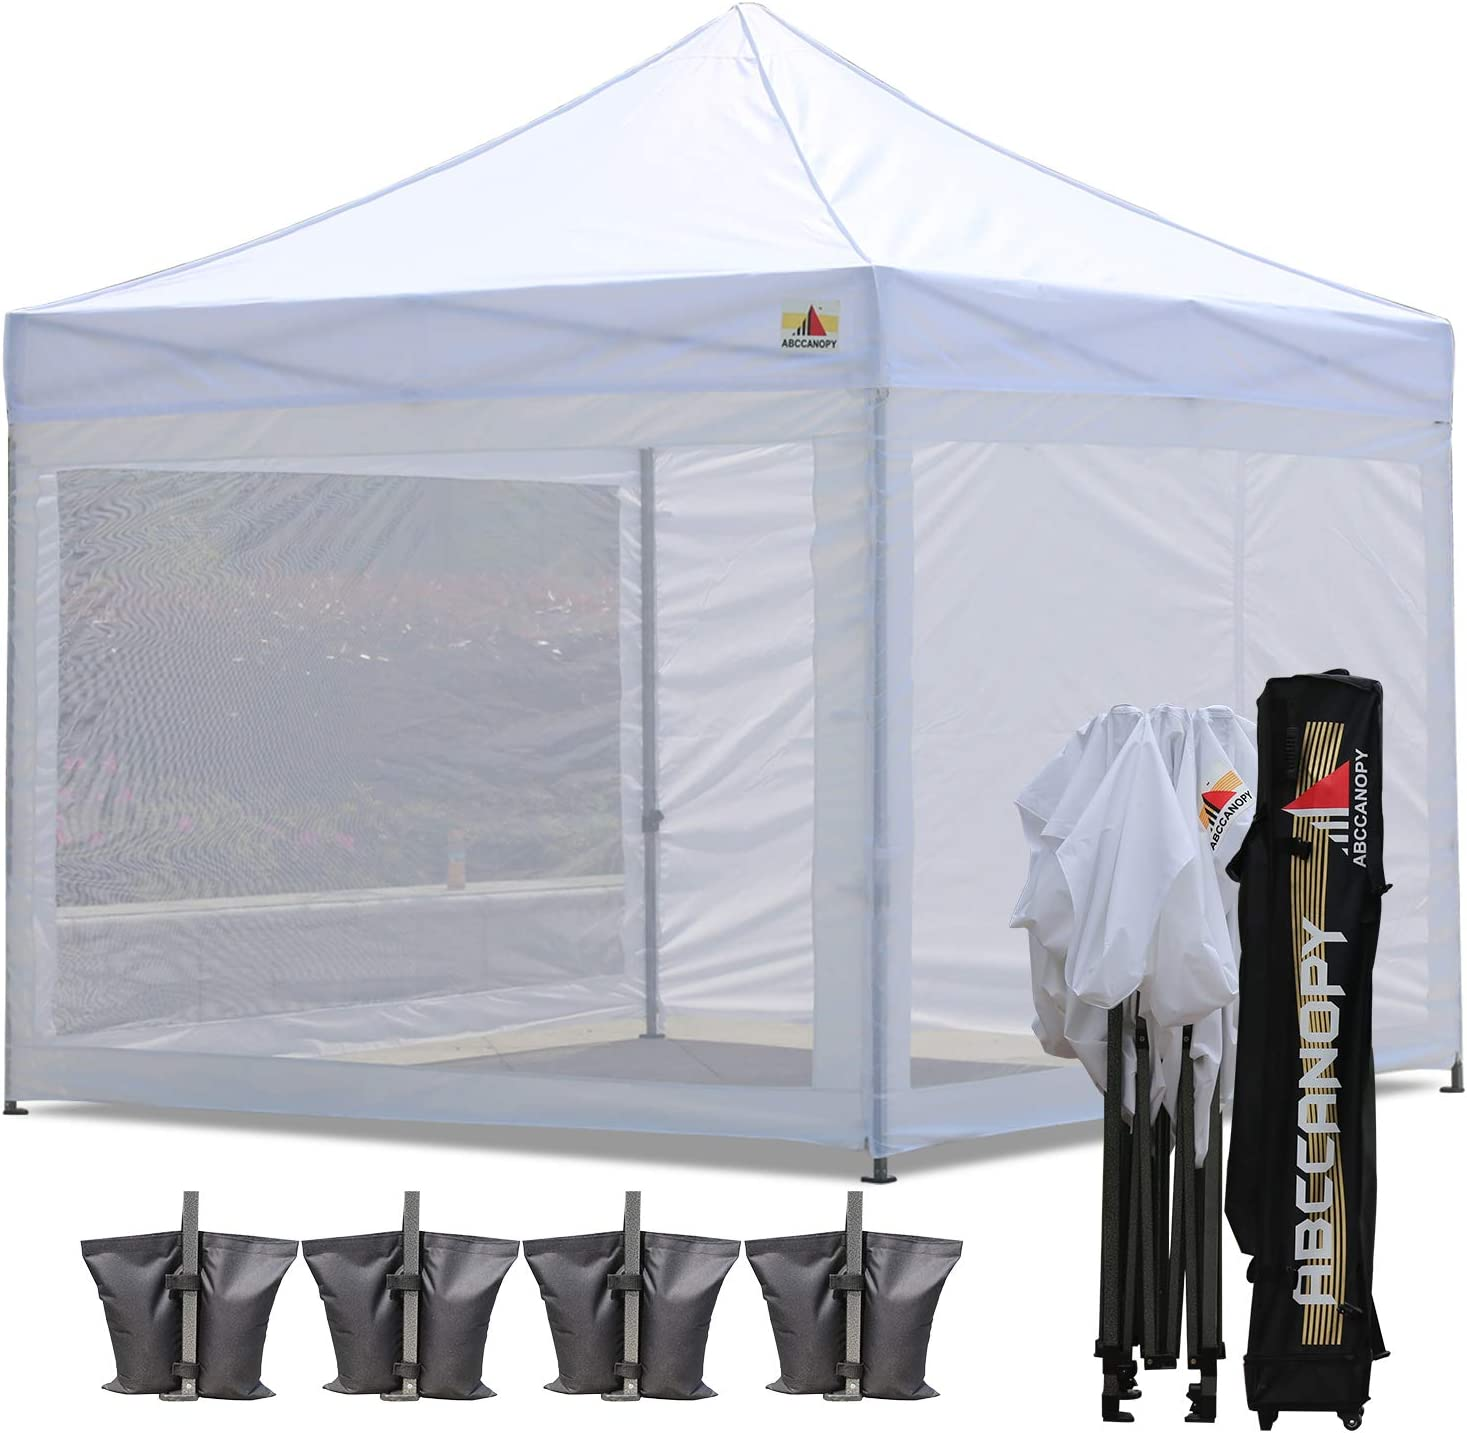 ABCCANOPY 10×10 Pop-up Canopy Tent Commercial Tents with White Mesh Walls Camping Screen Mesh House Bonus Rolly Carry Bag and 4X Weight Bag 1 White